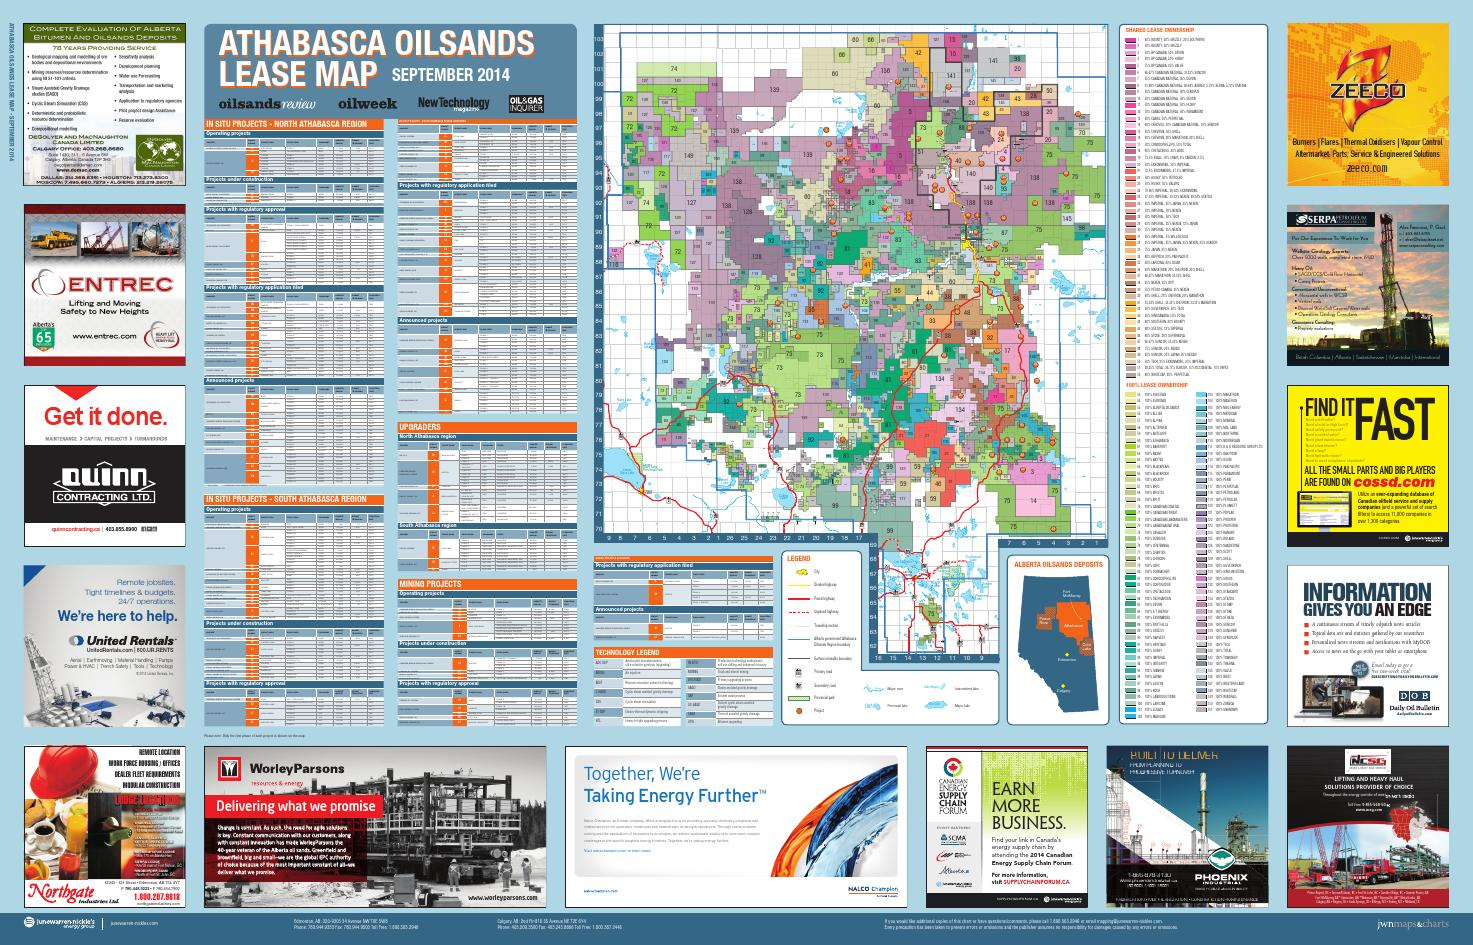 Athabasca Oilsands Lease Map 2014 by JWN | Trusted energy